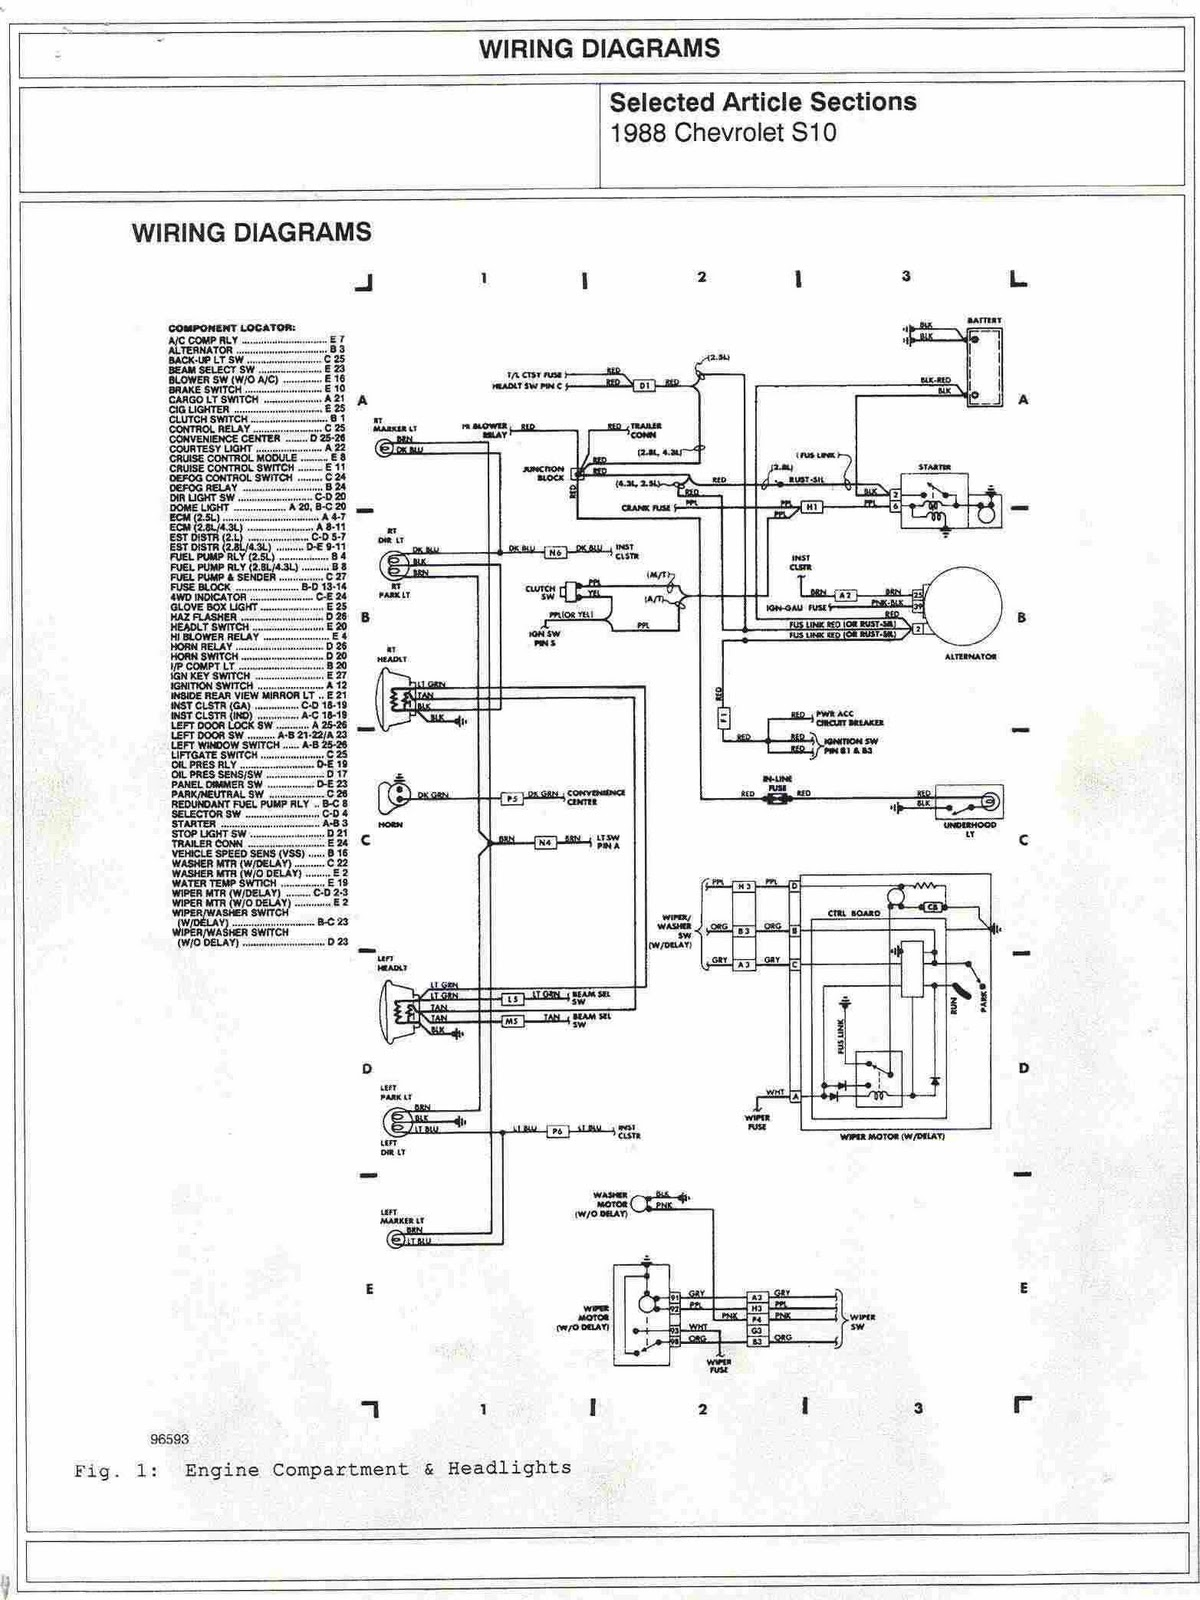 1988+Chevrolet+S10+Engine+Compartment+and+Headlights+Wiring+Diagrams 95 s10 wiring diagram 95 tahoe wiring diagram \u2022 wiring diagrams 1993 chevy silverado starter wiring diagram at alyssarenee.co